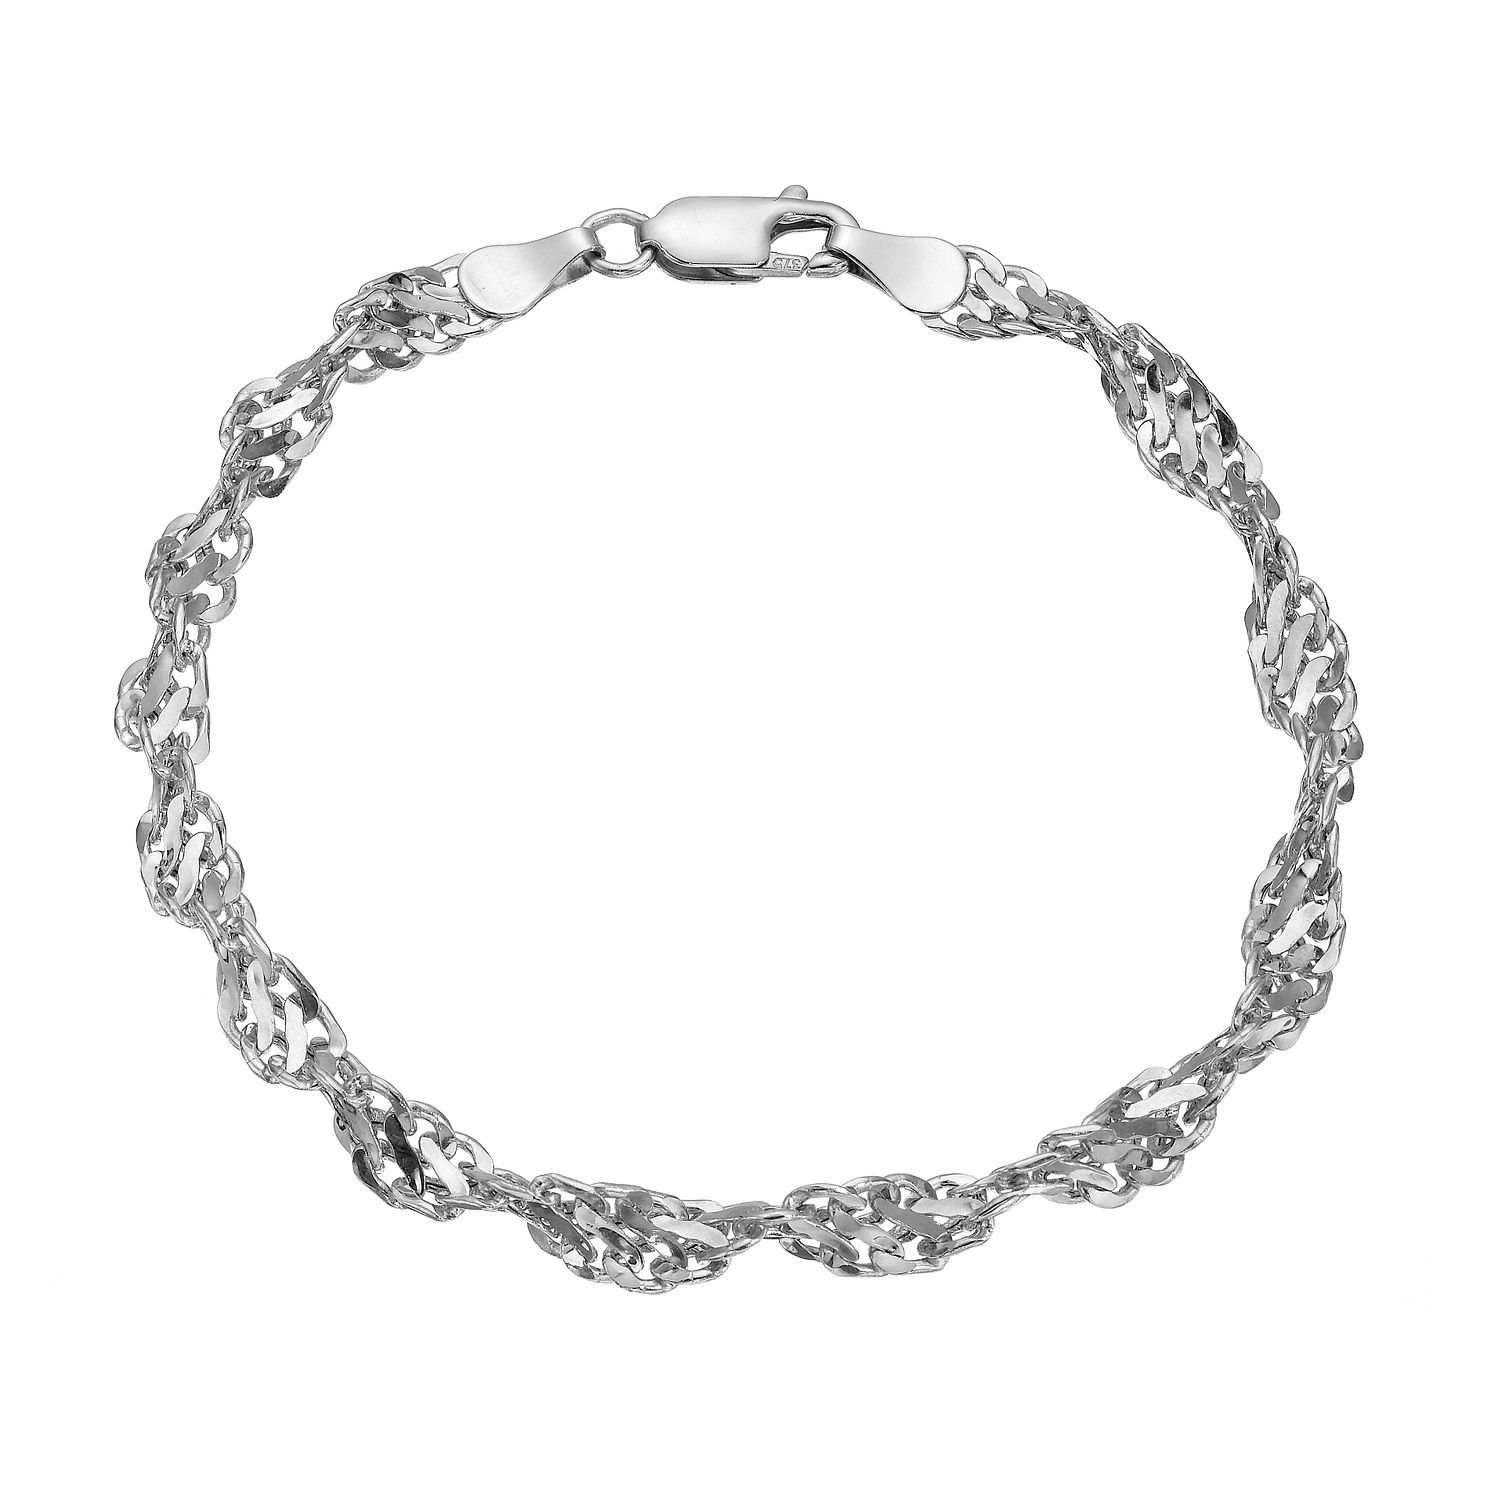 9ct White Gold Cut Out Twist Bracelet 7.5